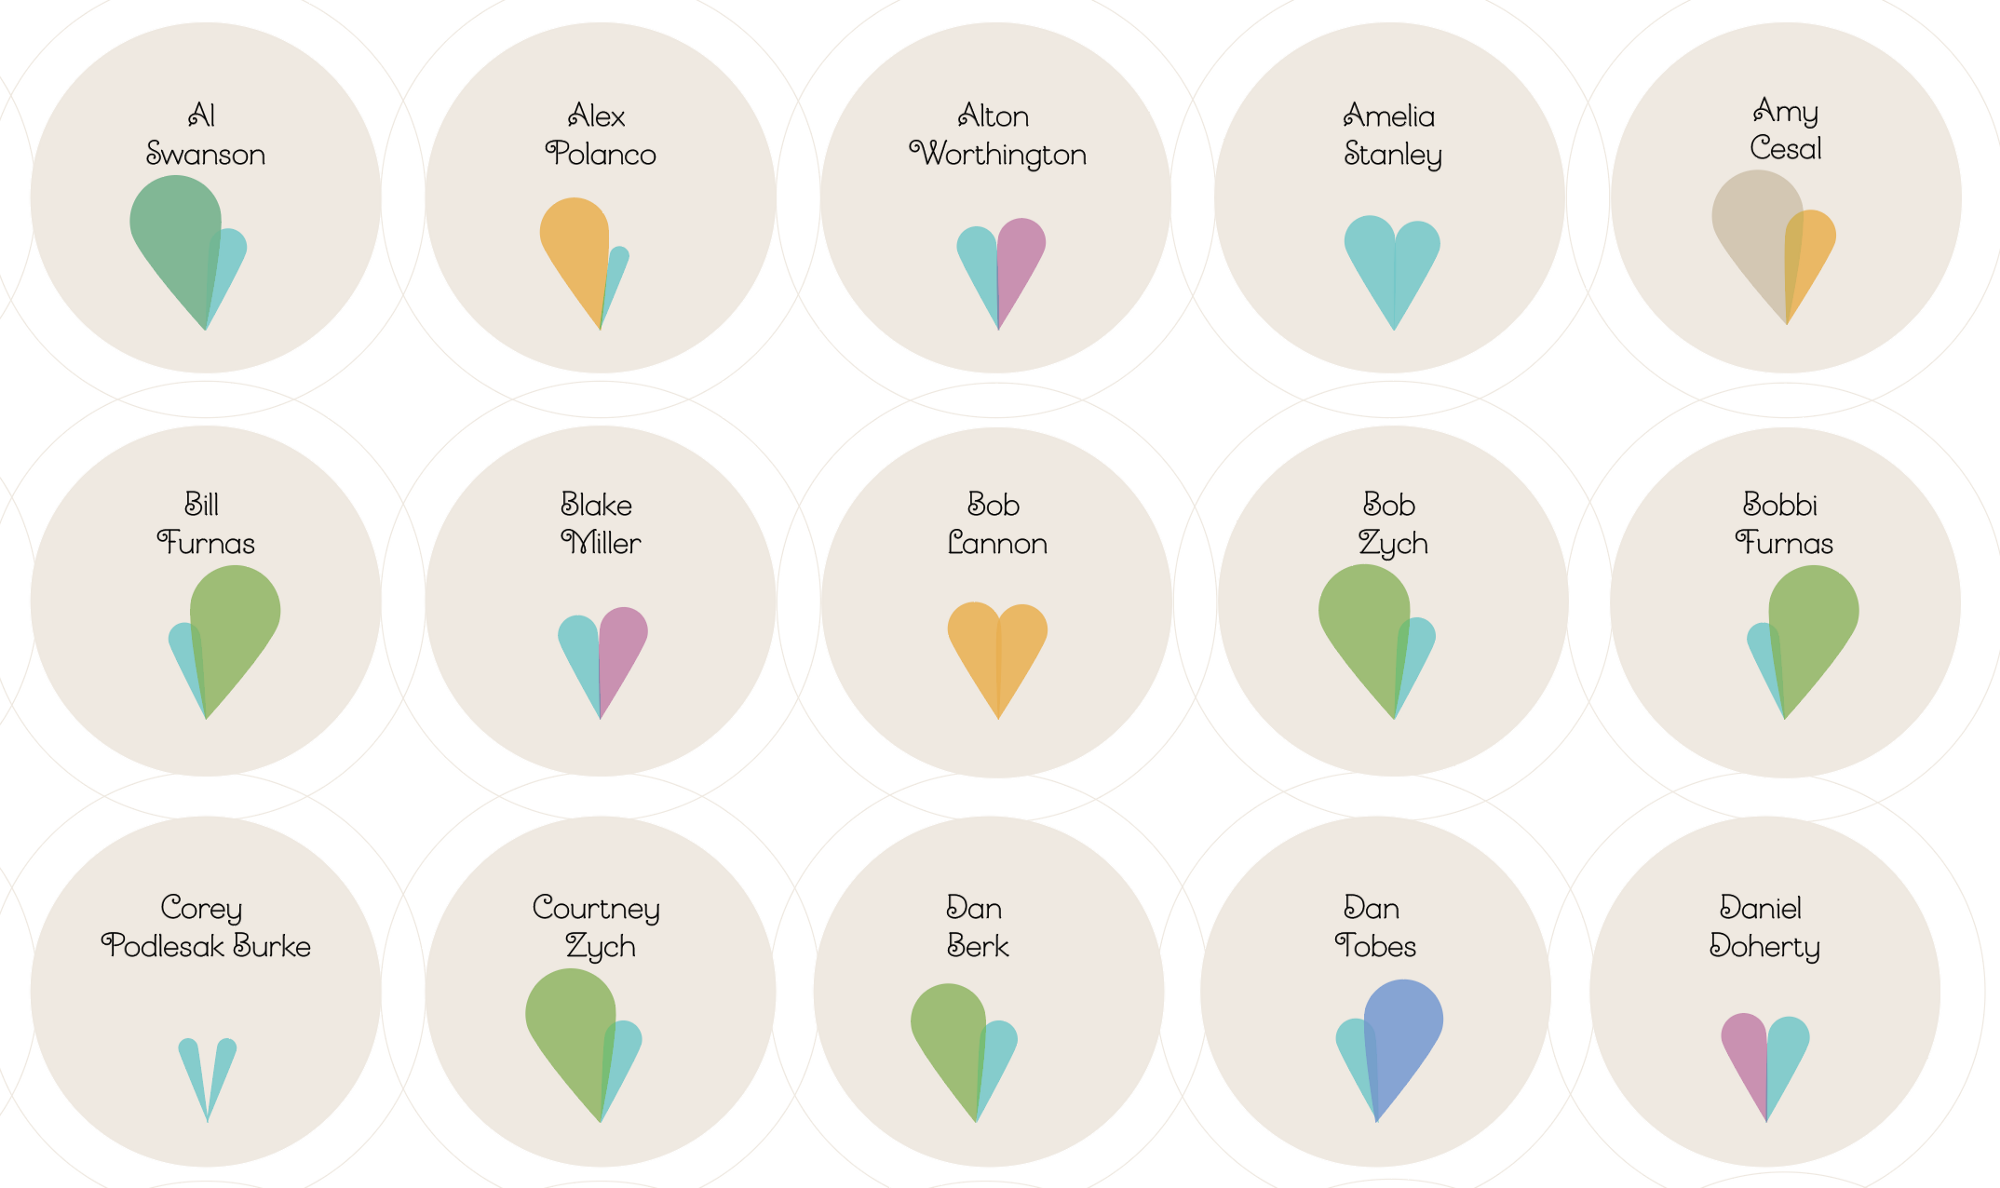 Amy and Zander's wedding guest badges